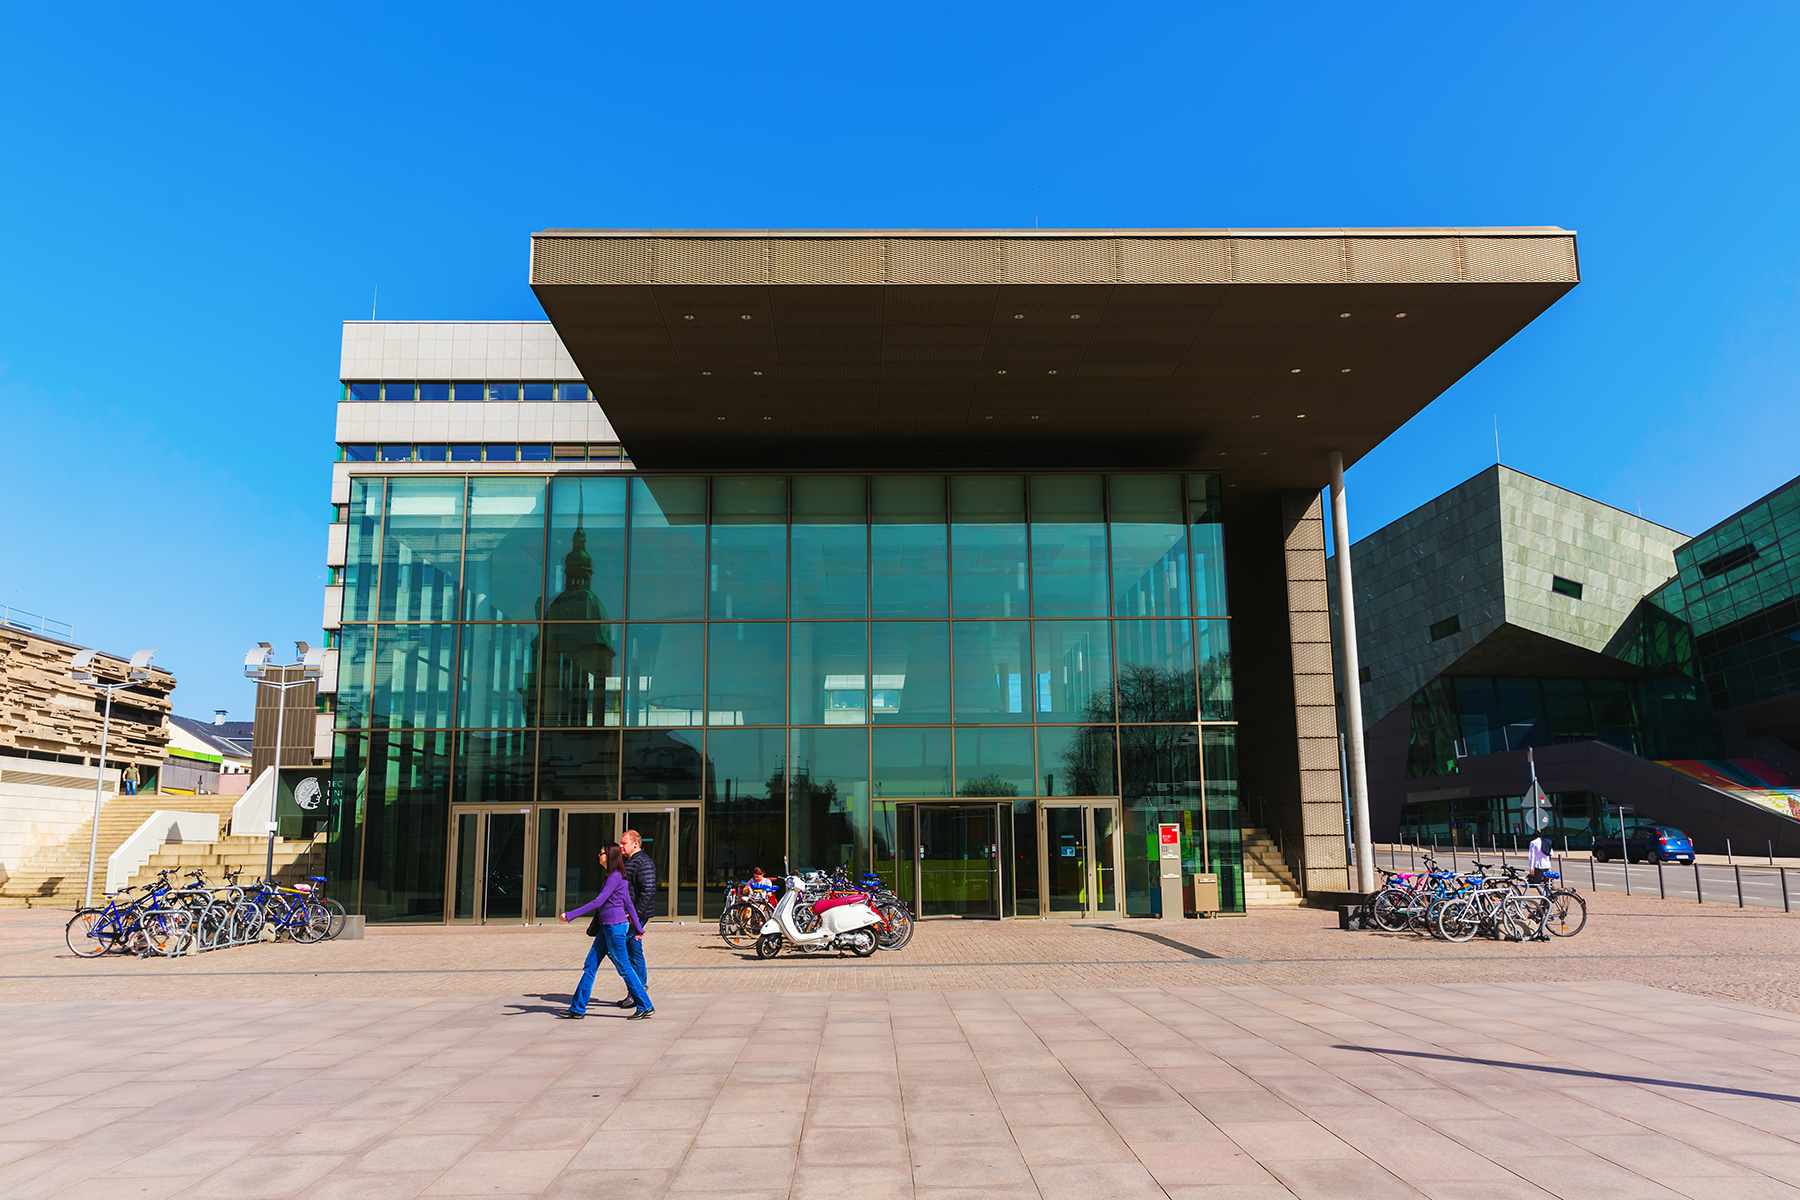 The Technical University of Darmstadt